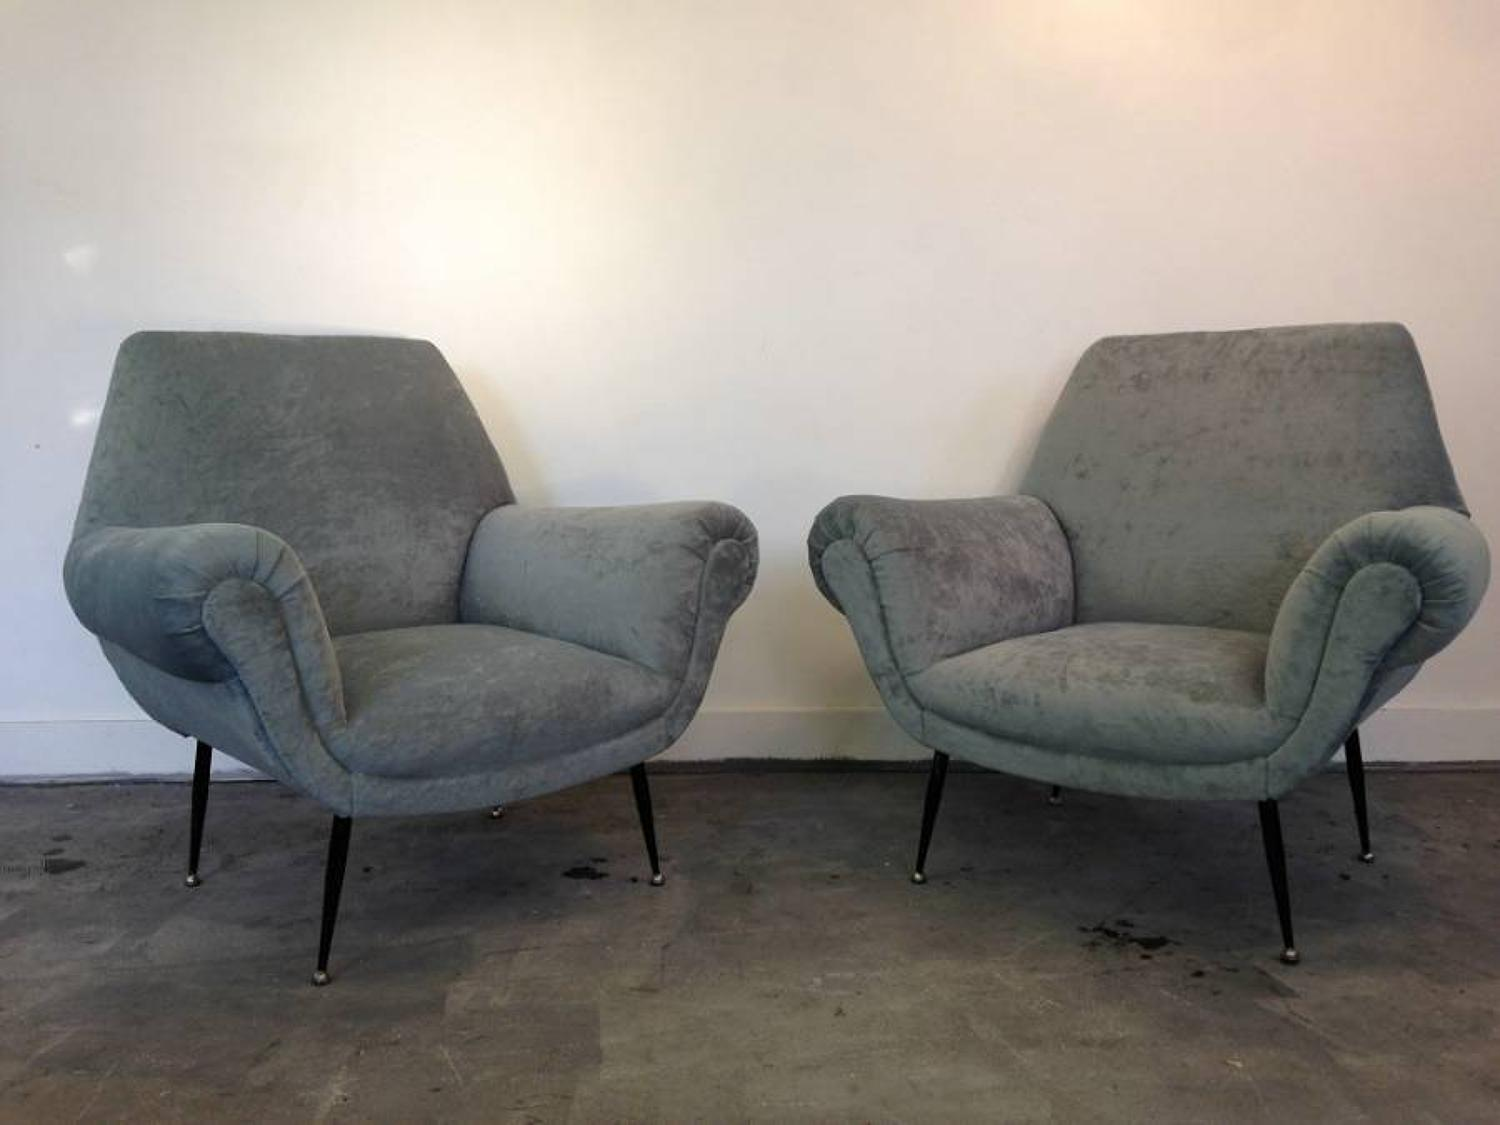 A pair of Italian 1950s armchairs